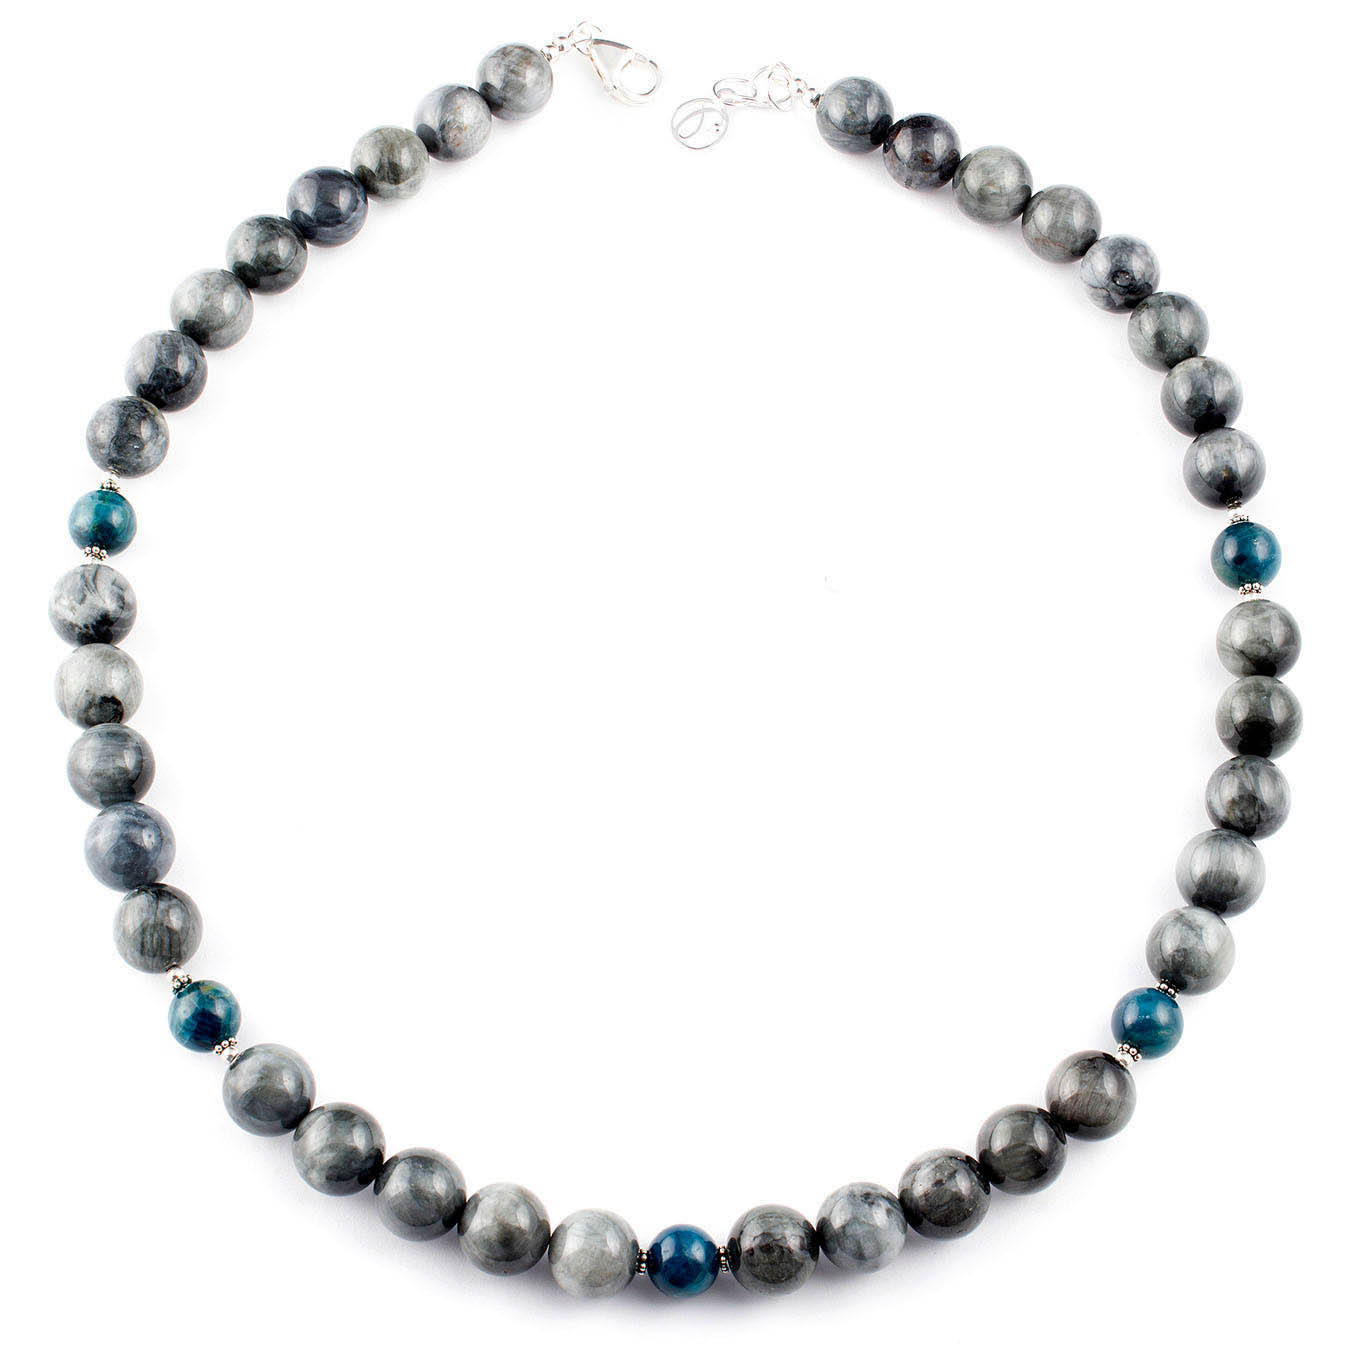 Handmade choker jewelry necklace made of teardrop faceted black agate